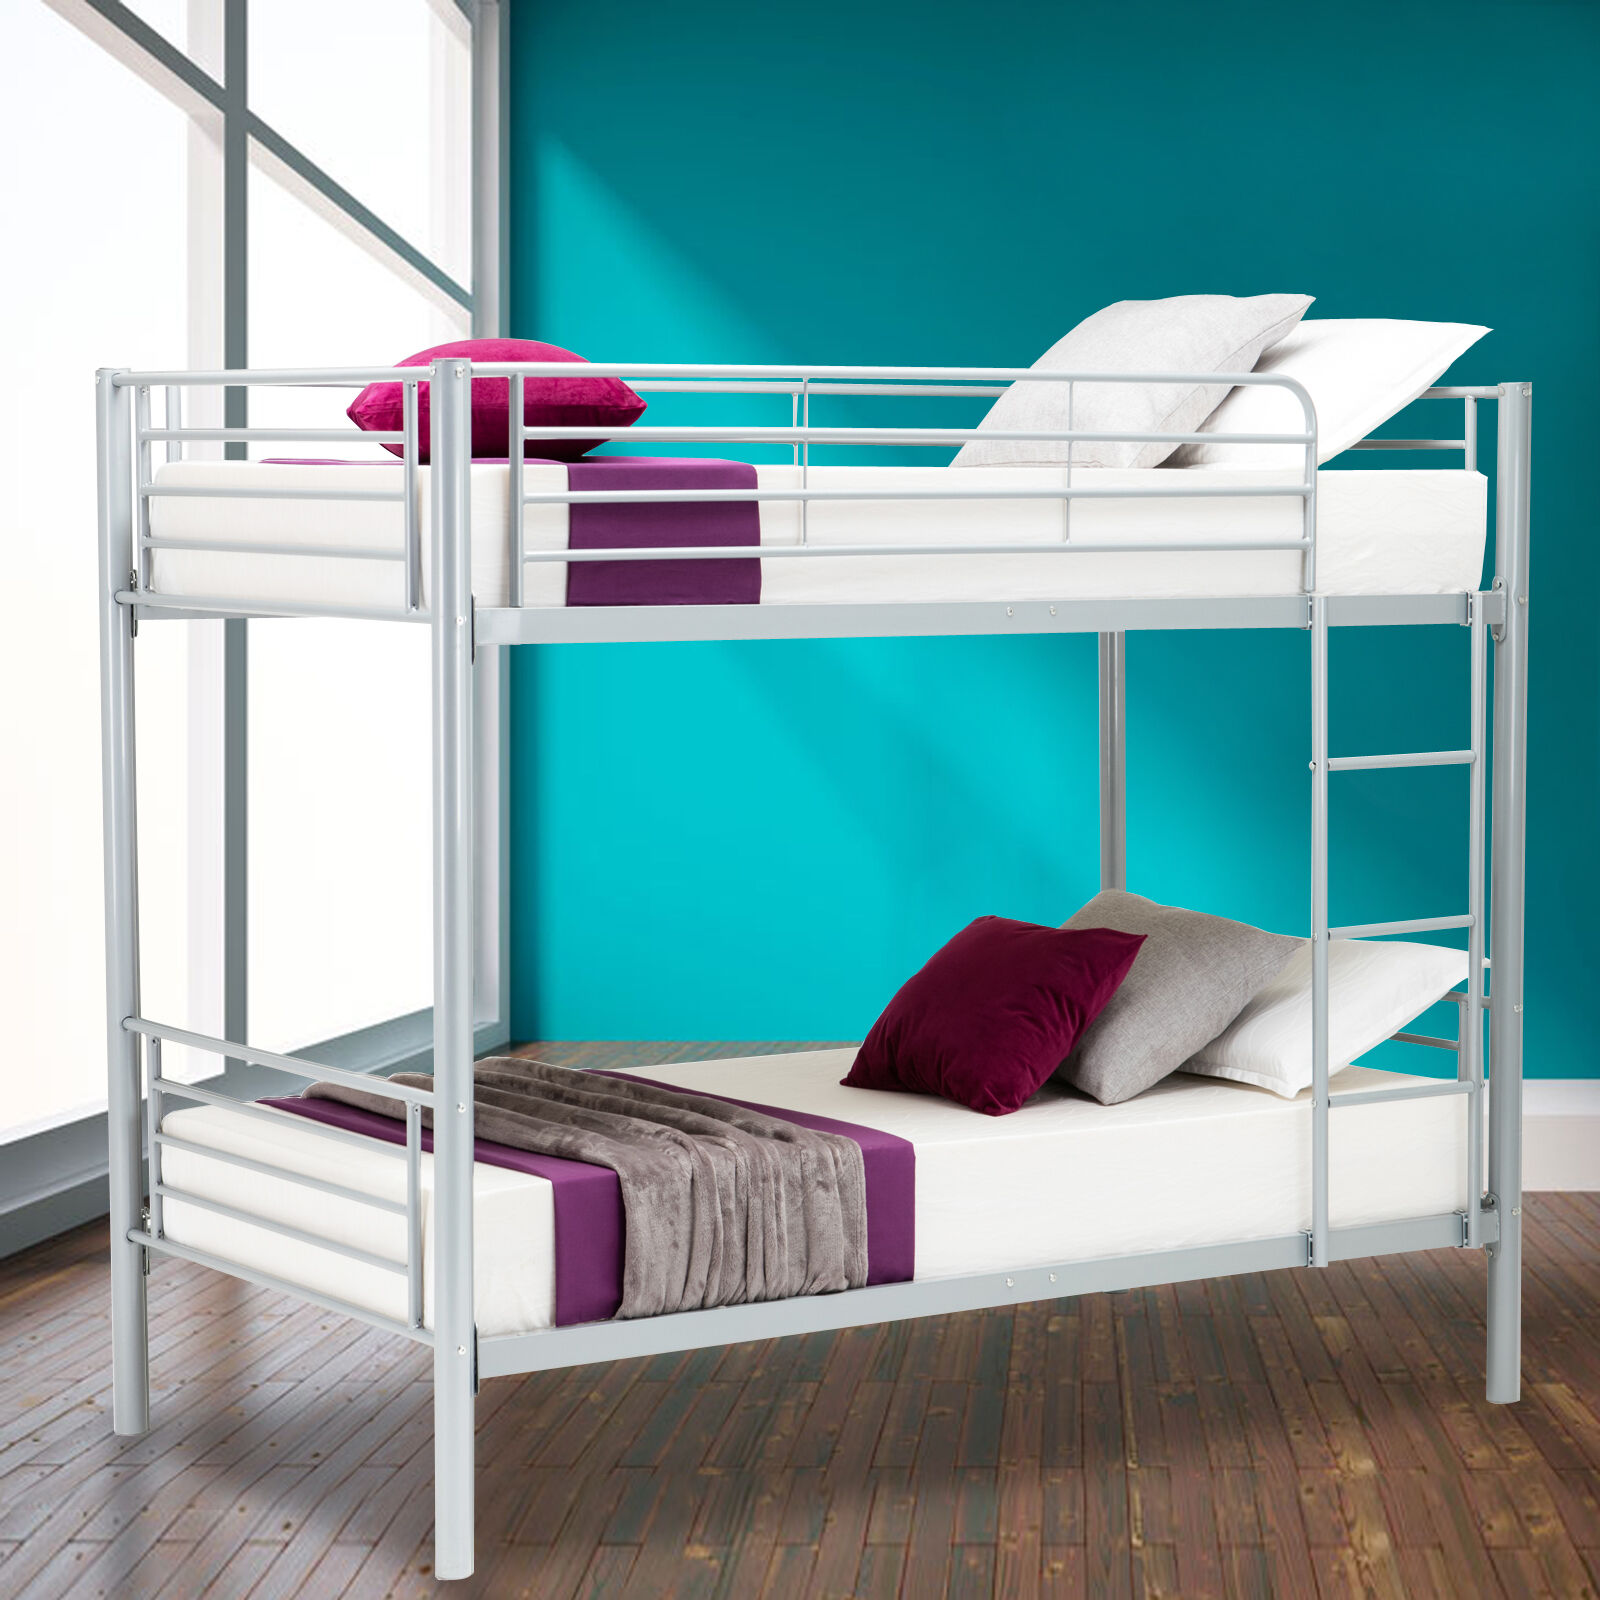 metal twin over twin bunk beds frame ladder kids adult children bedroom dorm